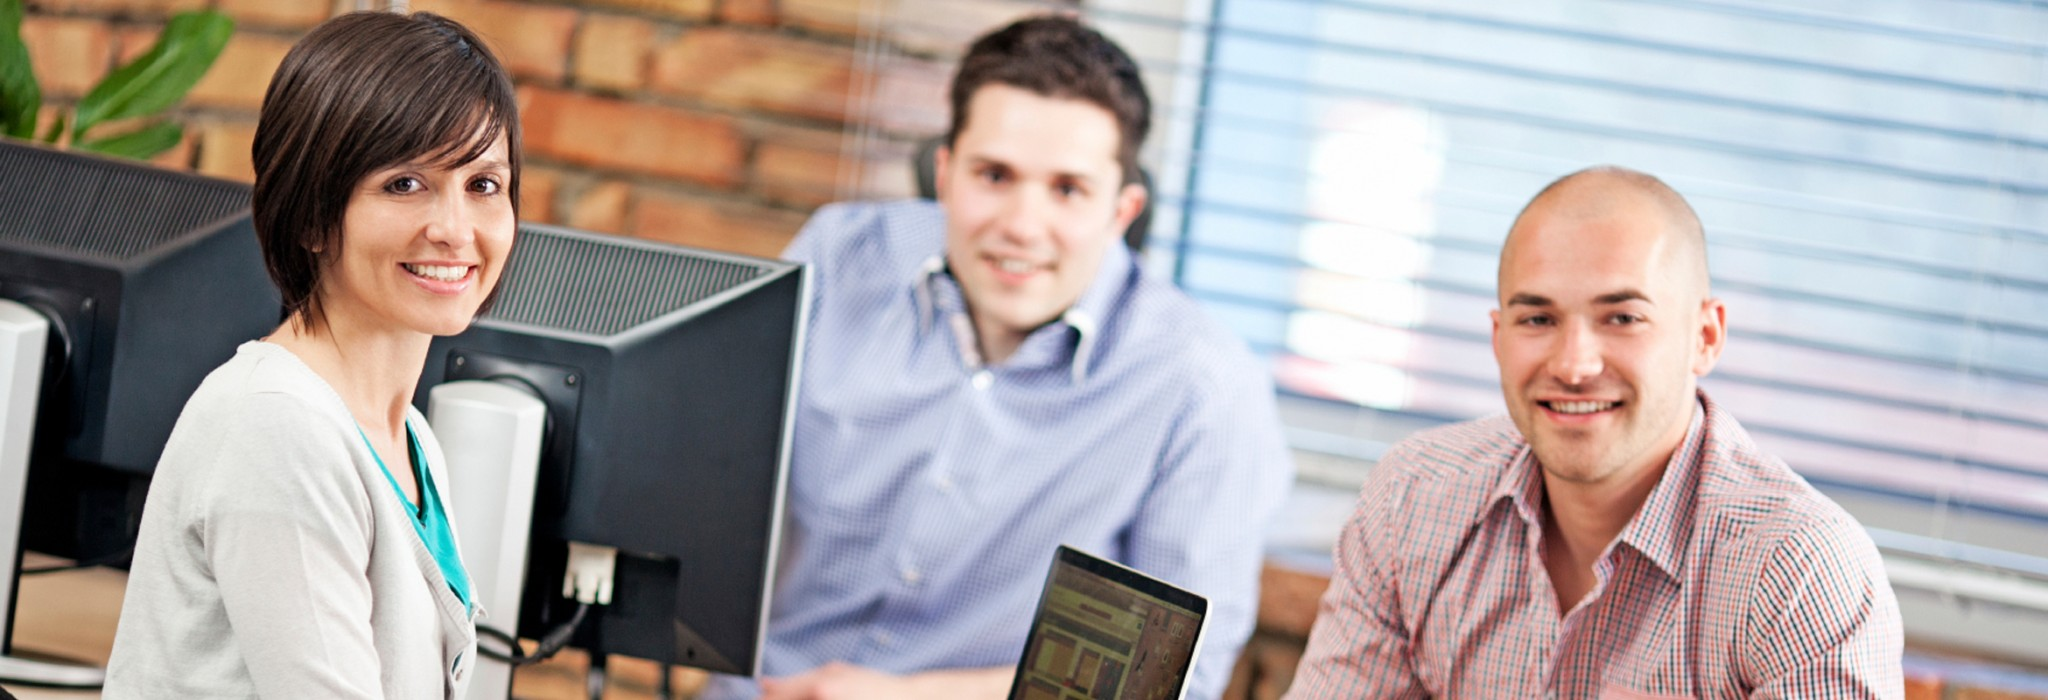 rediCASE case management software works for many types of service providers.